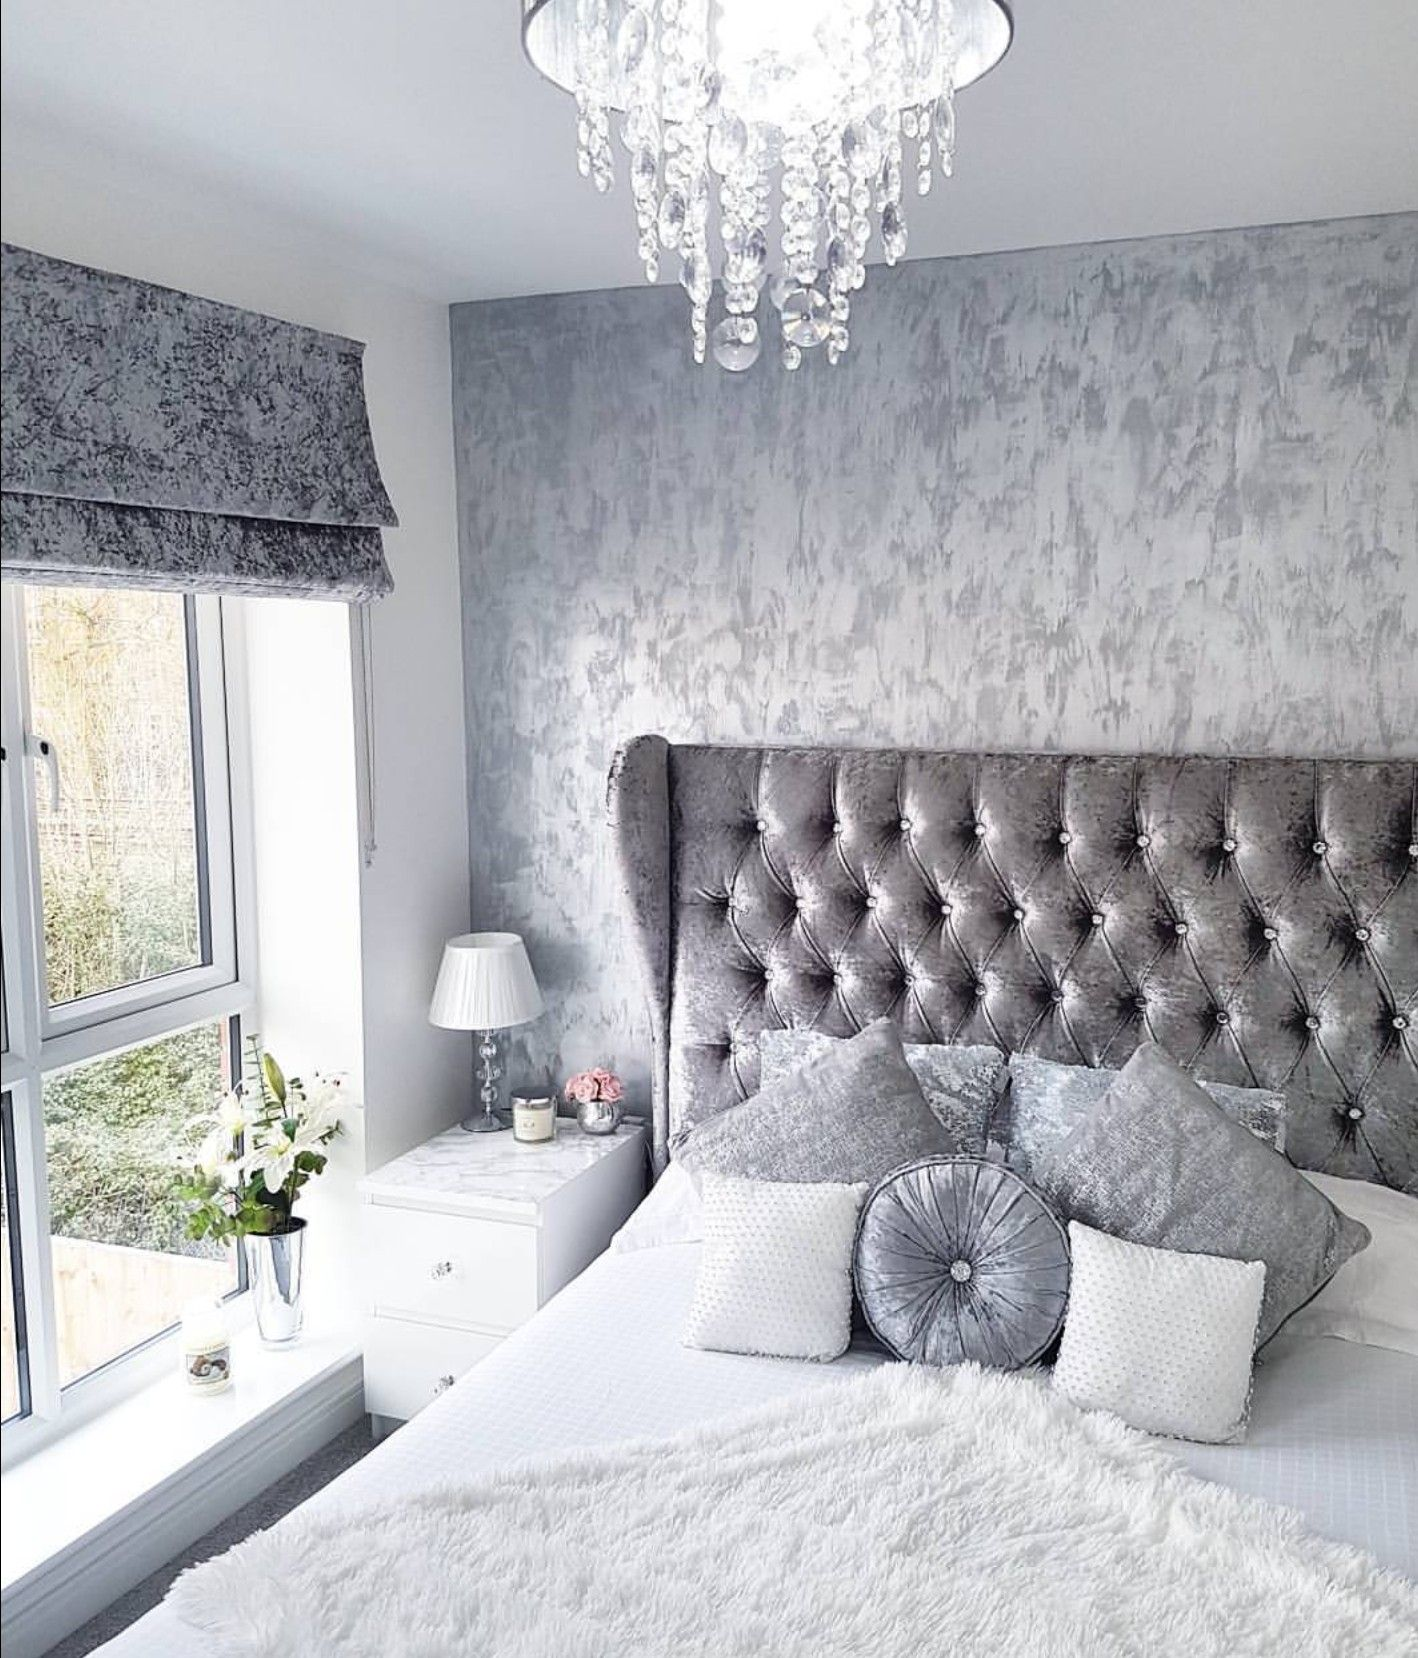 Grey, Silver, White Crushed Velvet Bedroom. Modern Decor